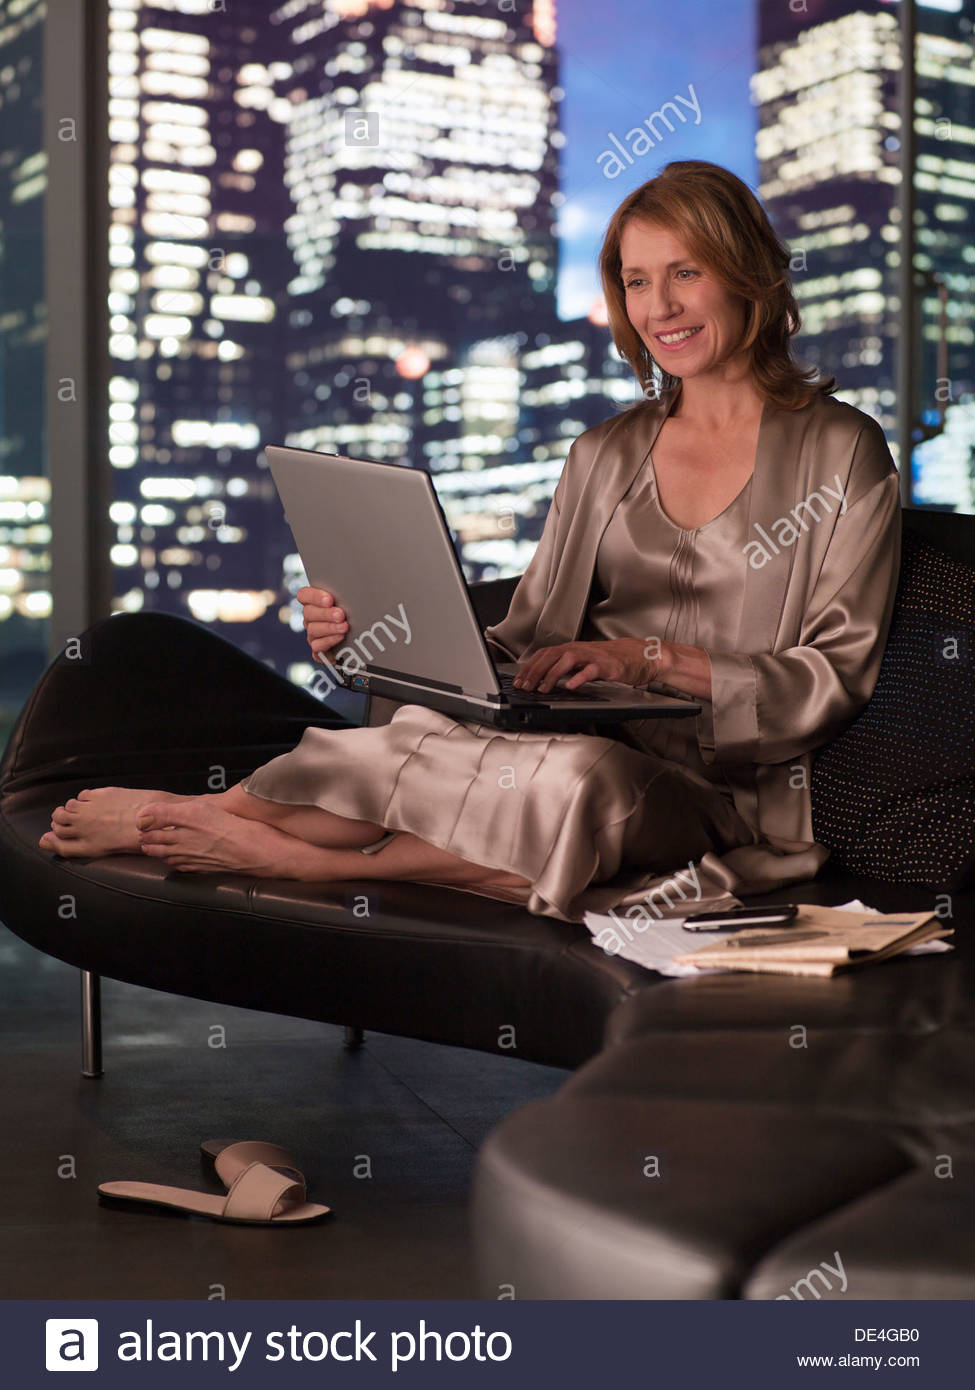 Woman in nightgown using laptop at night - Stock Image